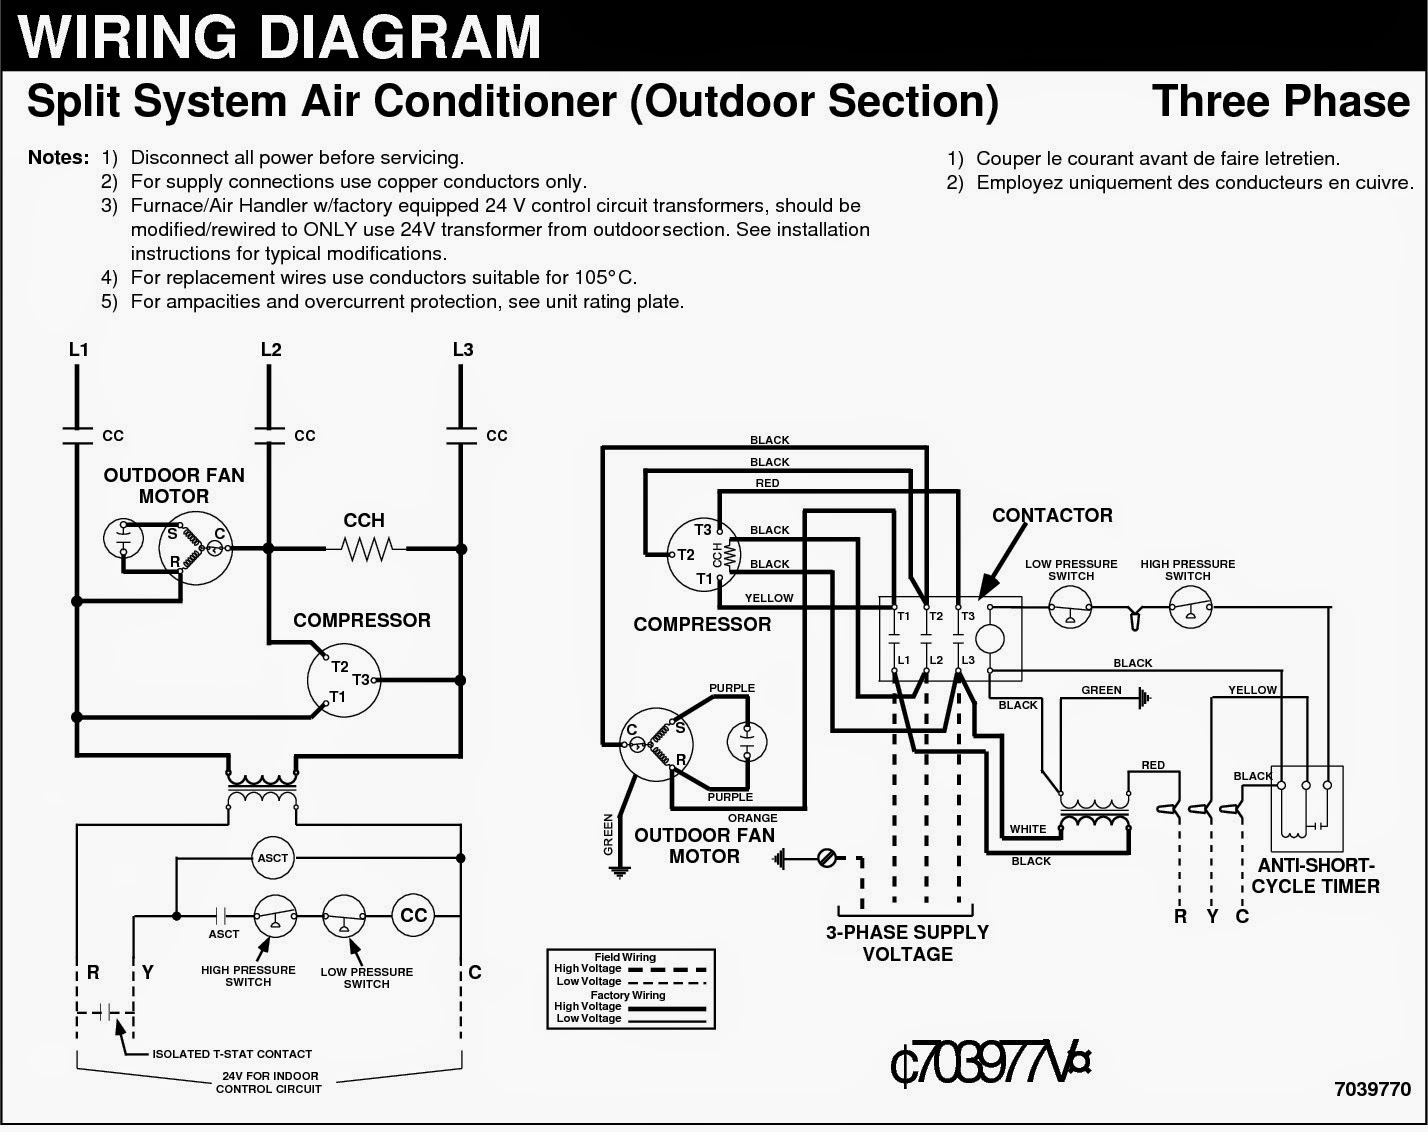 3+phase ac wire diagram fridge wire diagram \u2022 wiring diagrams j squared co split ac outdoor wiring diagram at fashall.co